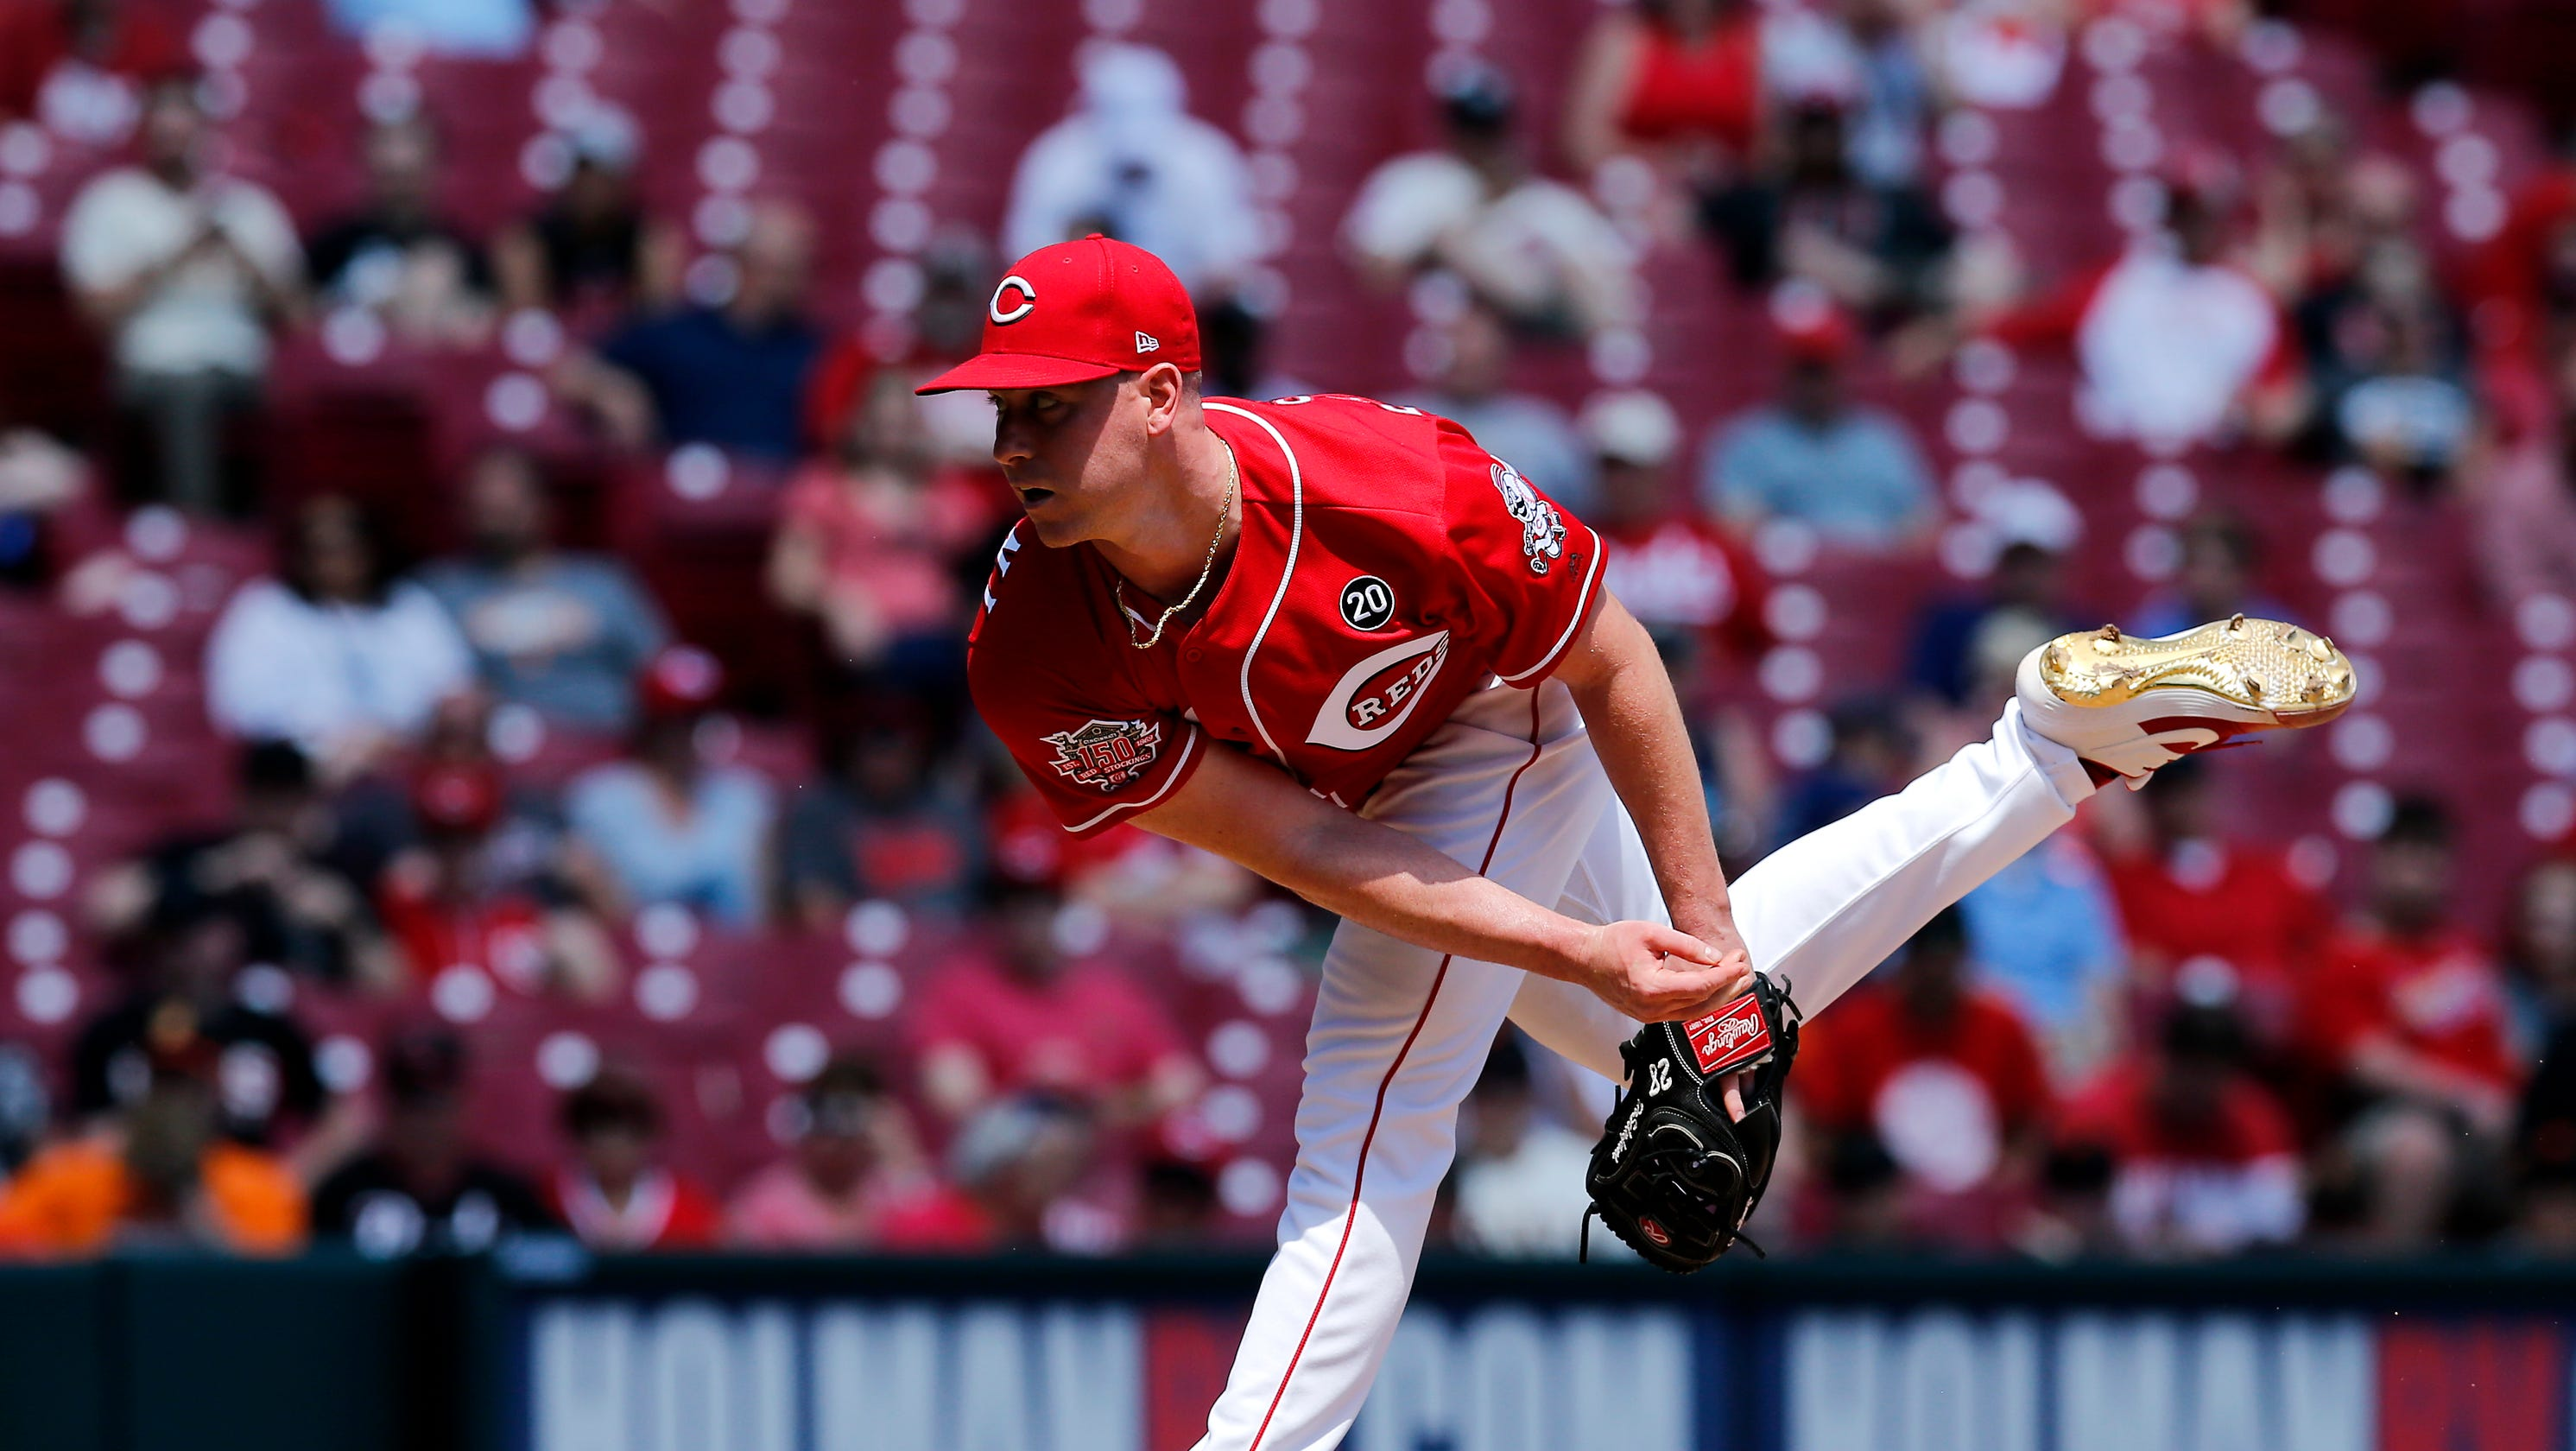 Fastballs At Top Of Zone Are A Big Weapon For Cincinnati